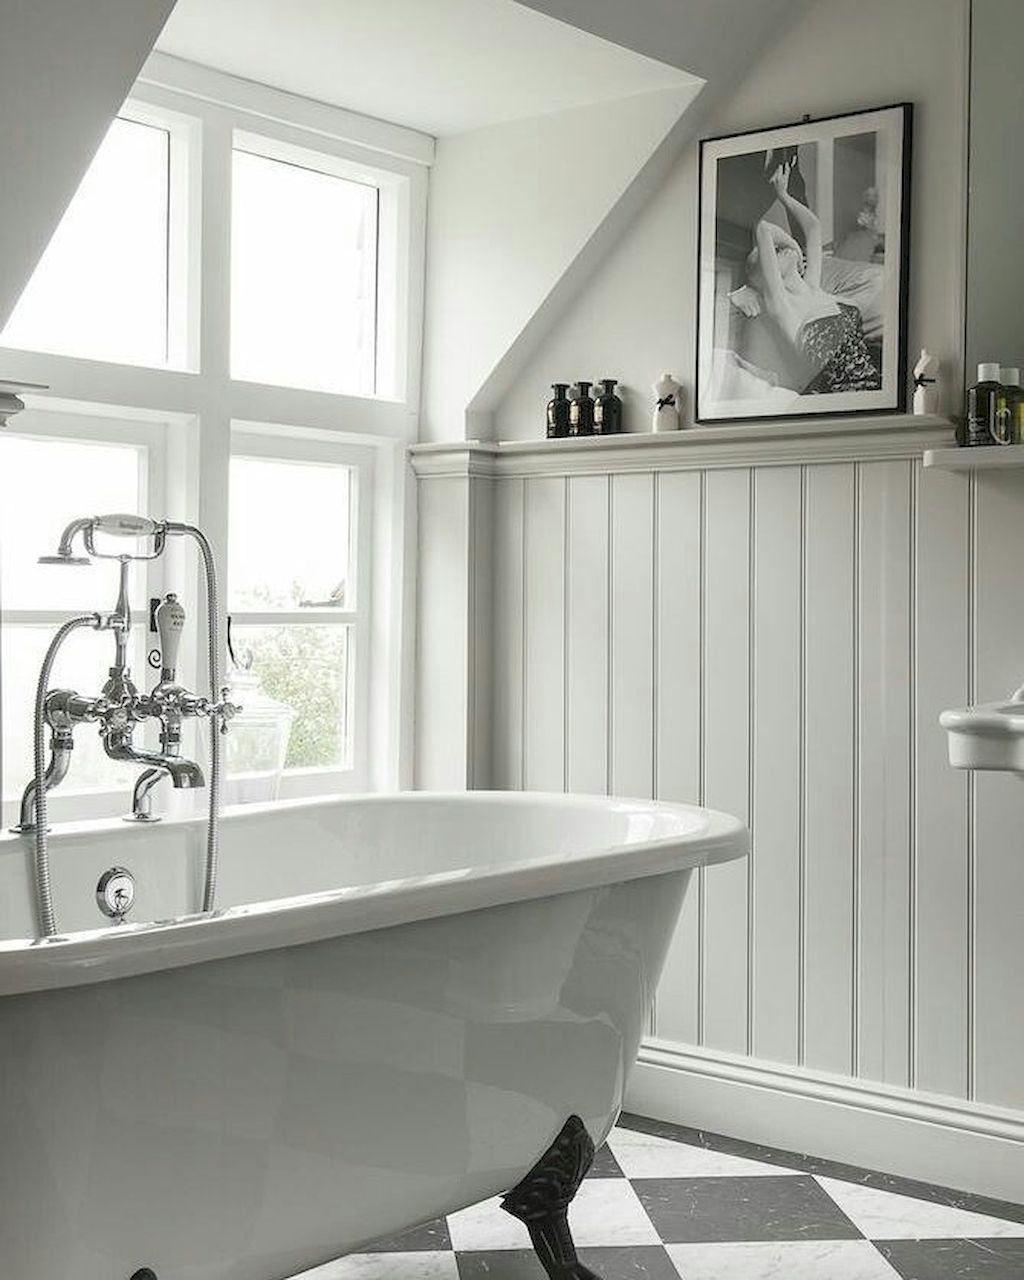 Home Art Bathroom Cladding Cottage Bathroom Shabby Chic Bathroom